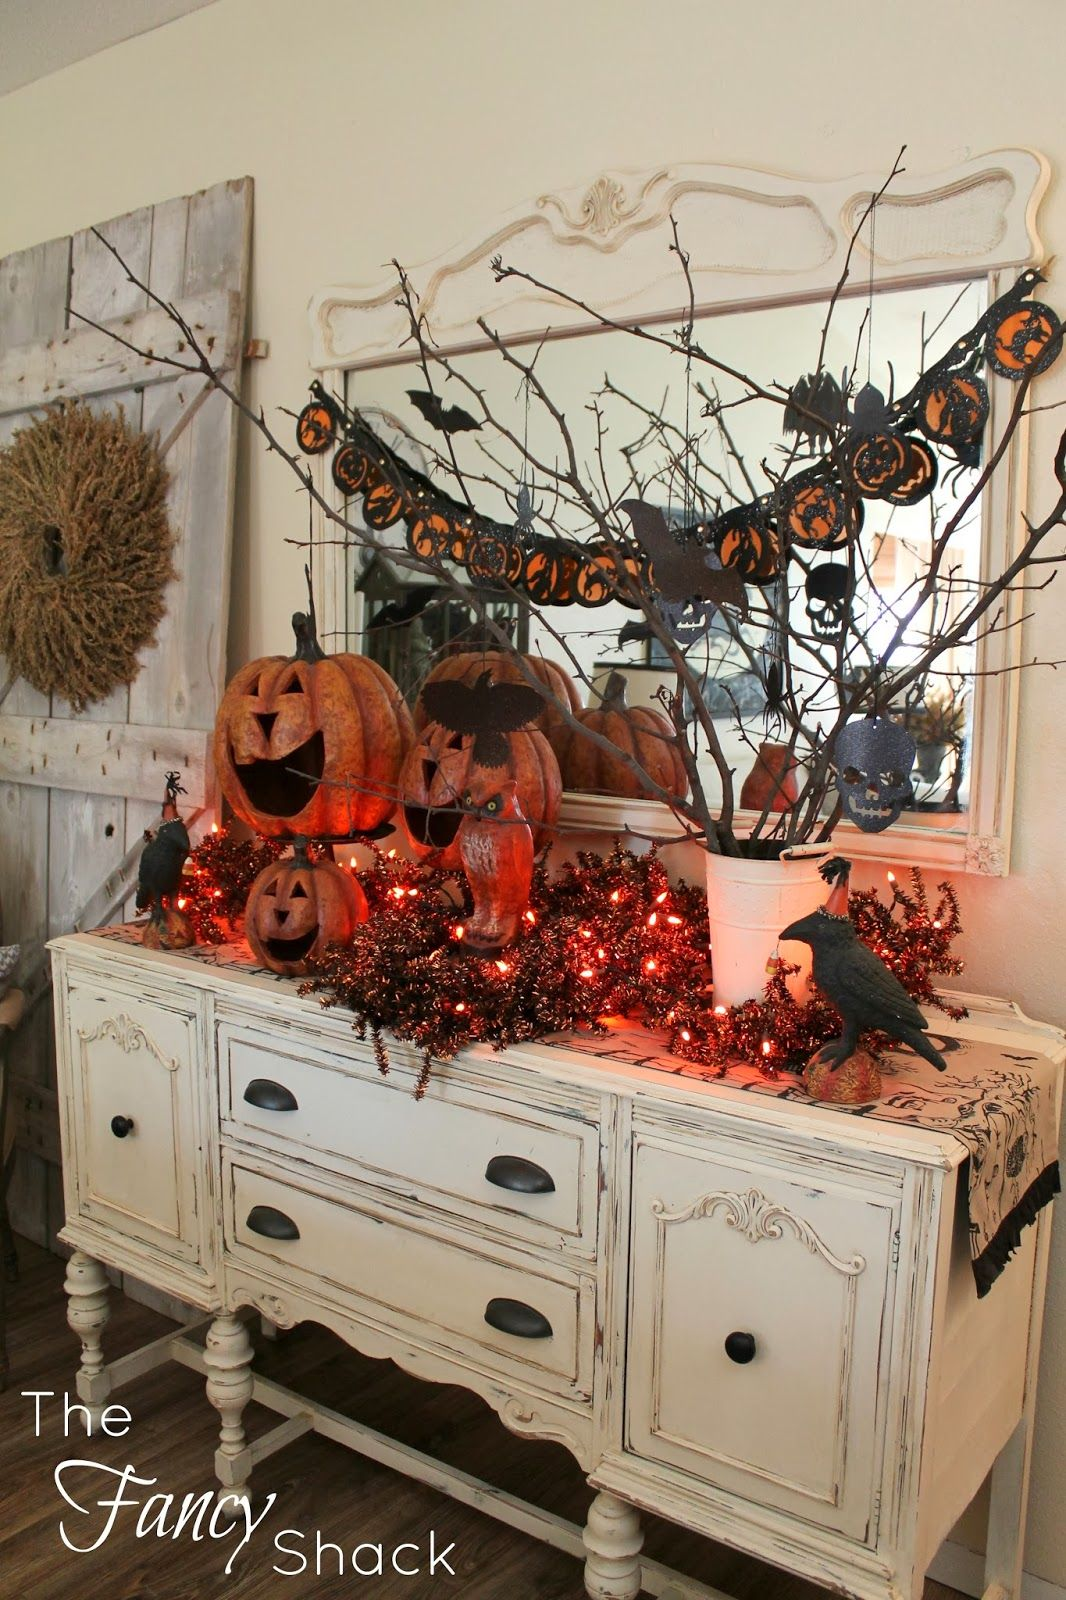 The Fancy Shack Halloween Vignettes halloween Pinterest - Decorating For Halloween